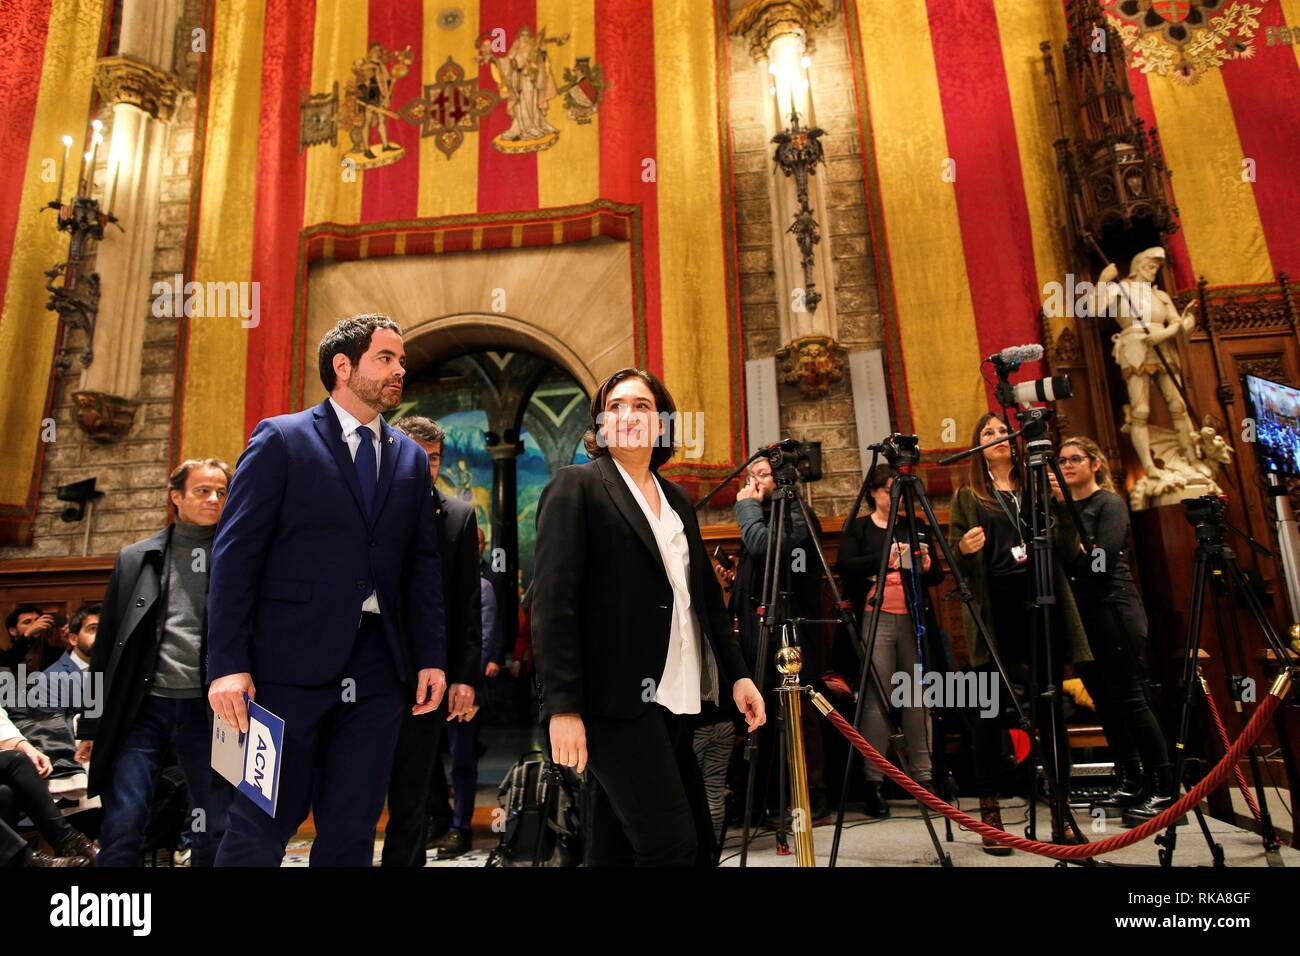 Barcelona, Spain. 10th Feb, 2019. Barcelona's Mayor Ada Colau (C), Catalan Towns Association's President David Saldoni (L) and some 400 Catalan mayors attend an event at Barcelona's City Hall to reject the trial of Catalan pro-independence leaders, in Barcelona, Spain, 10 February 2019. The participants asked for defendants' rights and basic liberties are respected, as well.The trial of Catalan pro-independence leaders begins at Madrid's High Court next 12 February. Credit: Alejandro Garcia/EFE/Alamy Live News - Stock Image